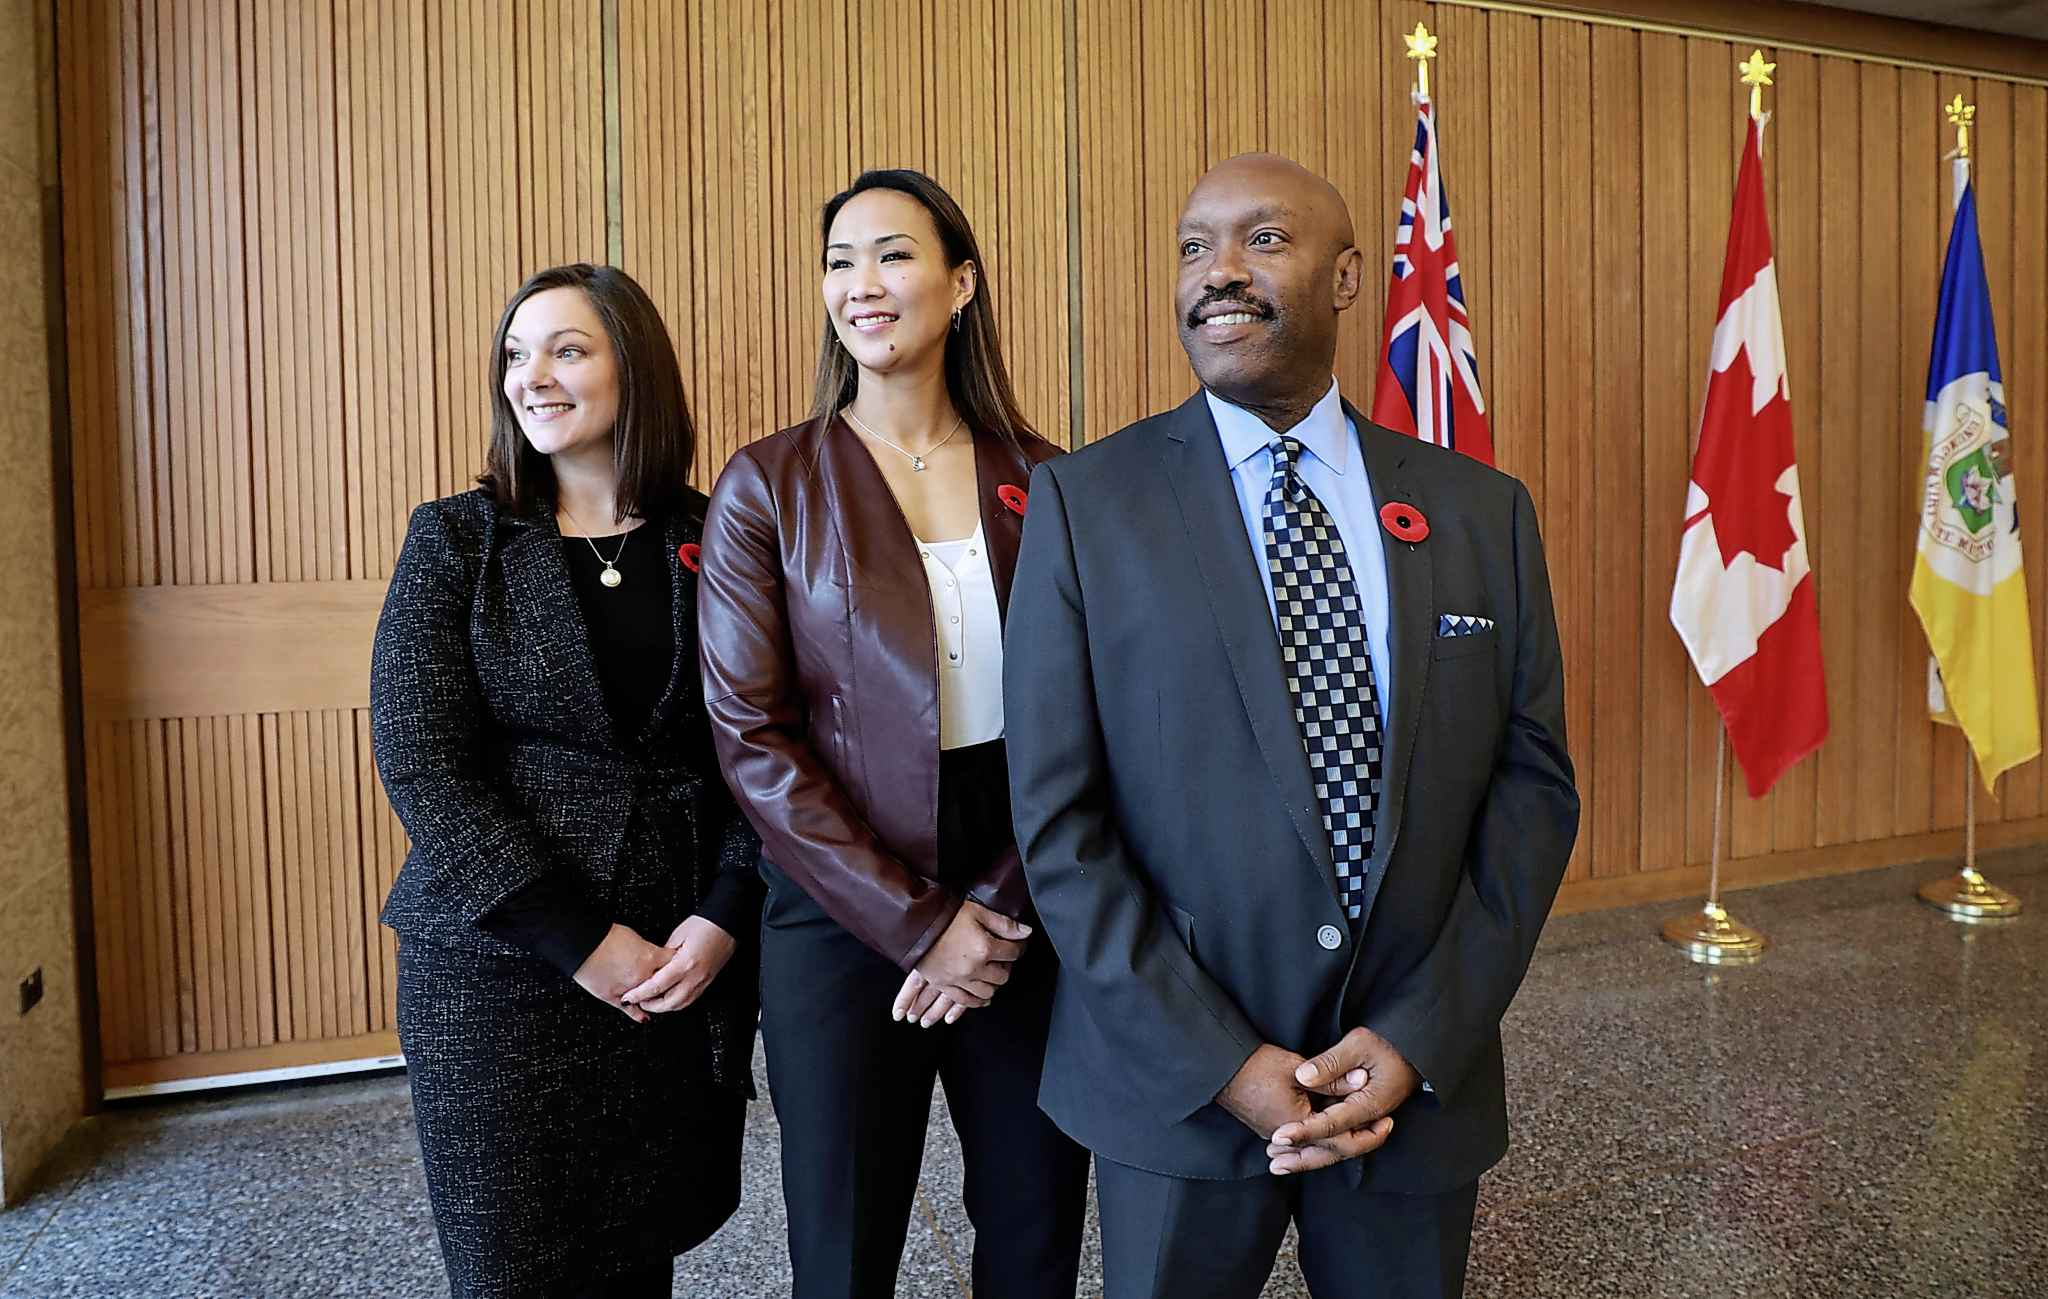 Three new council members, Sherri Rollins, Vivian Santos and Markus Chambers pose for photo at City Hall Monday afternoon after mayor Brian Bowman announces EPC members.